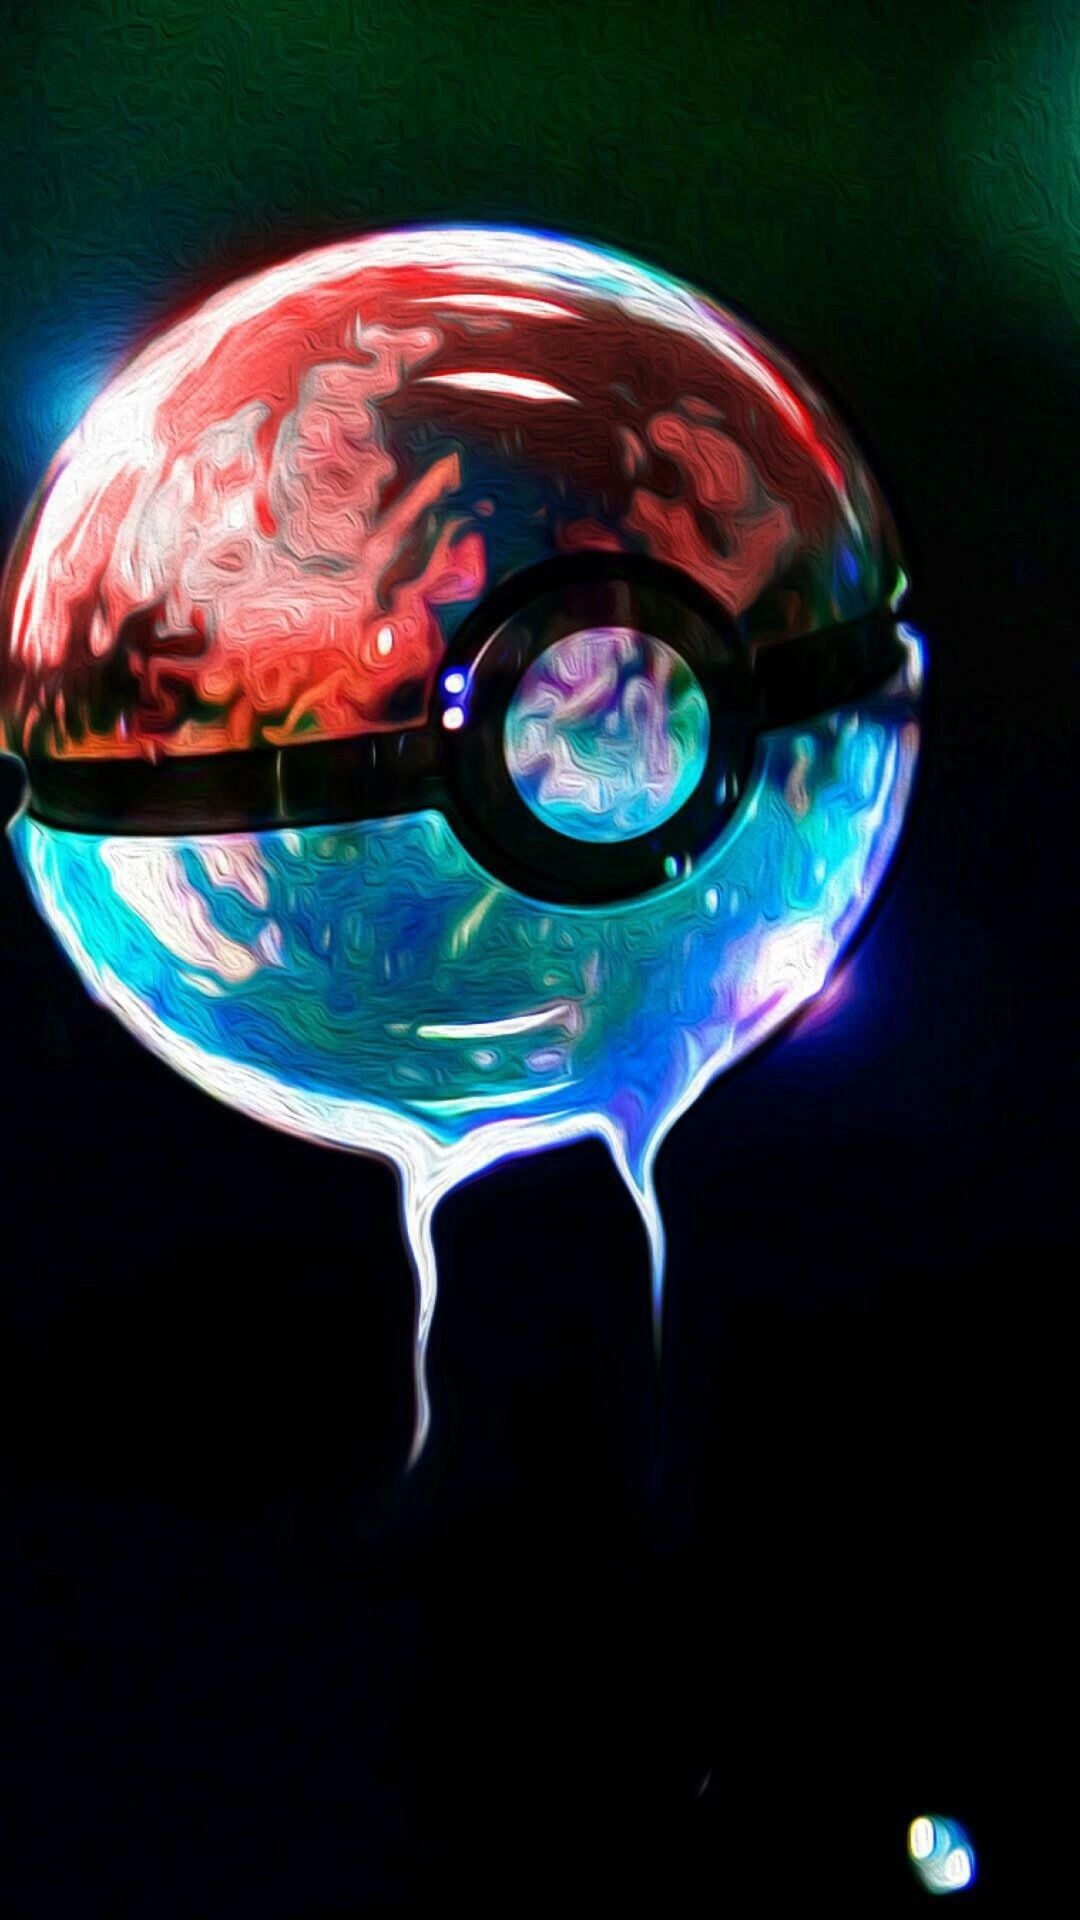 New 4k Ultra Hd Wallpapers For Iphone In 2020 Pokeball Wallpaper Anime Wallpaper Iphone Anime Wallpaper